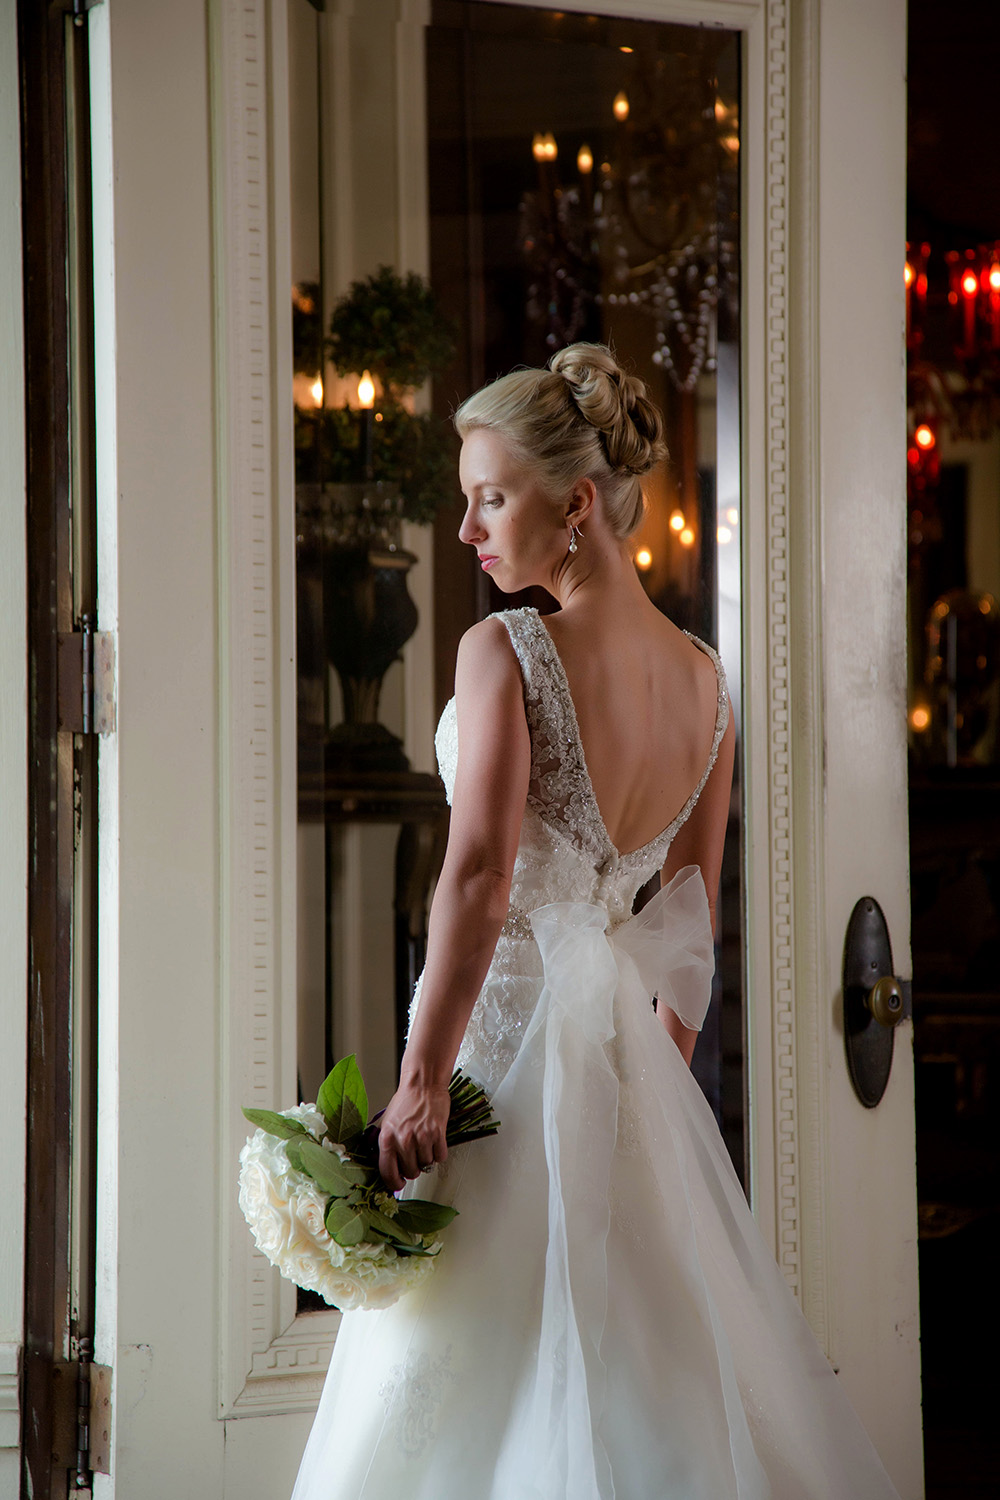 Candace_Bridals_0013.JPG